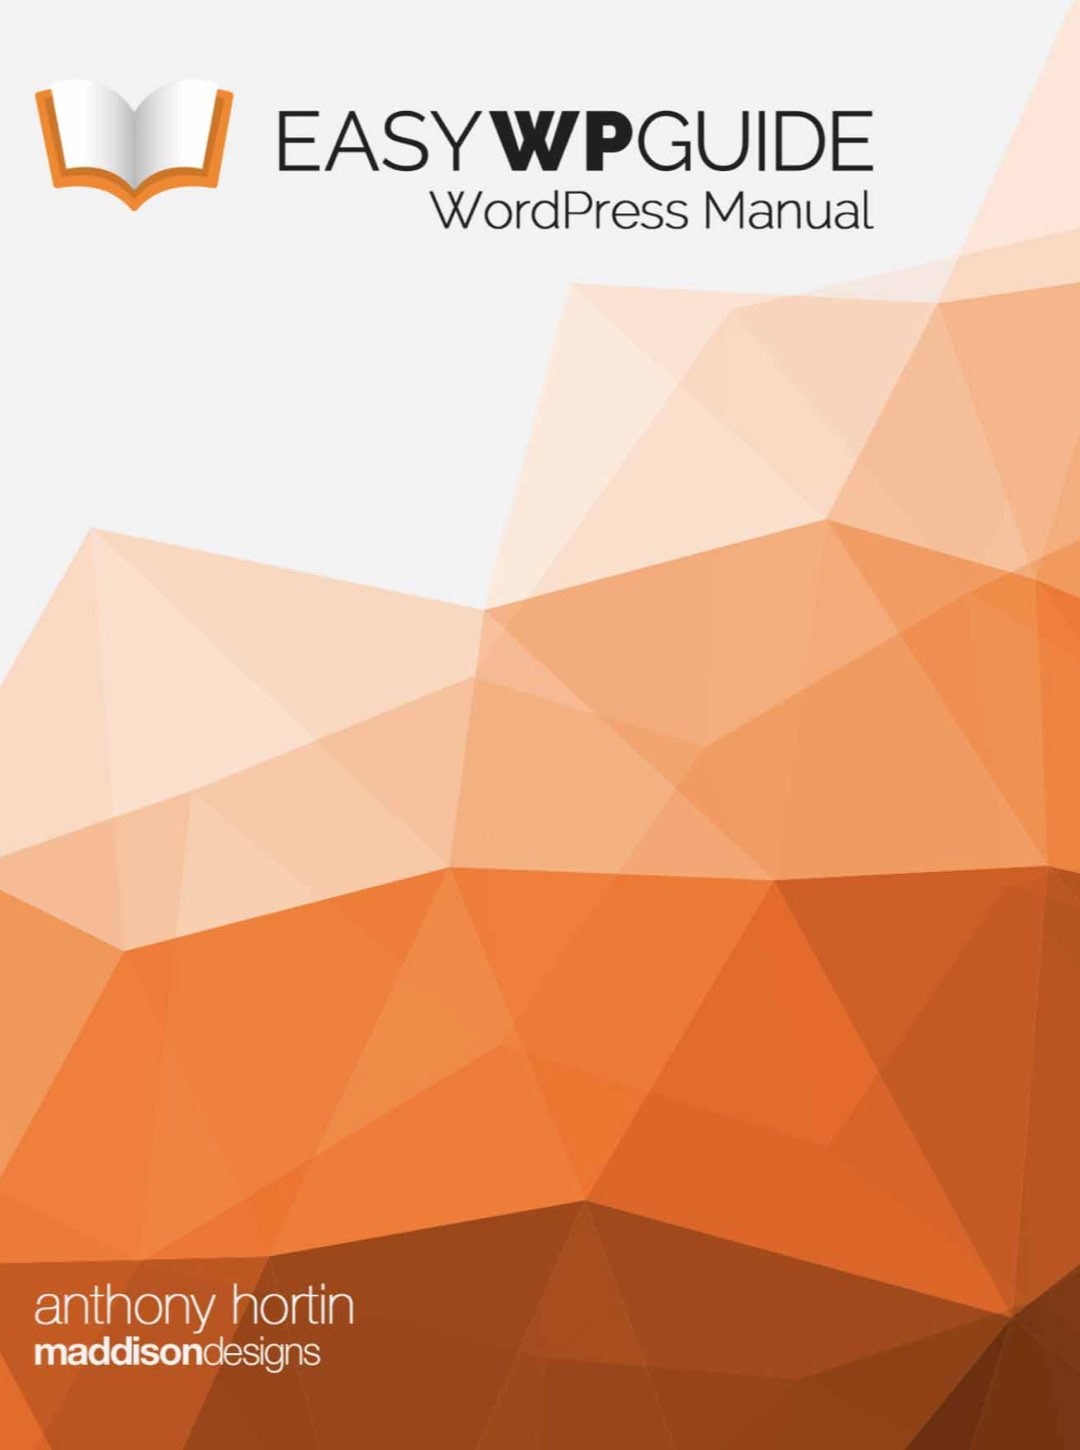 Easy WPGUIDE WordPress Manual